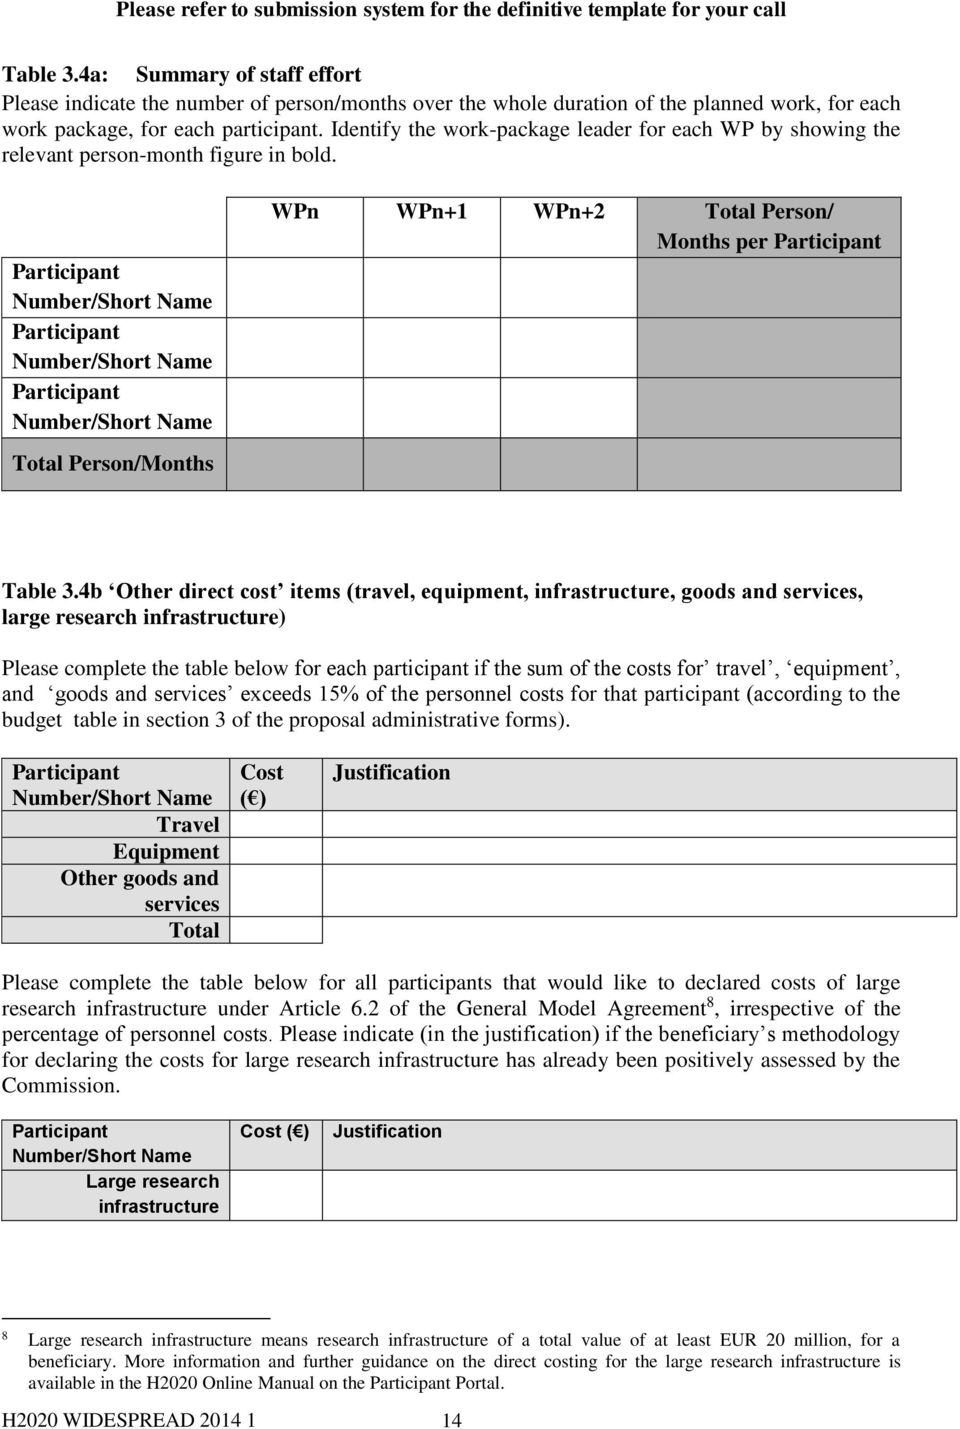 Charming Cost Justification Template Ideas - Entry Level Resume ...